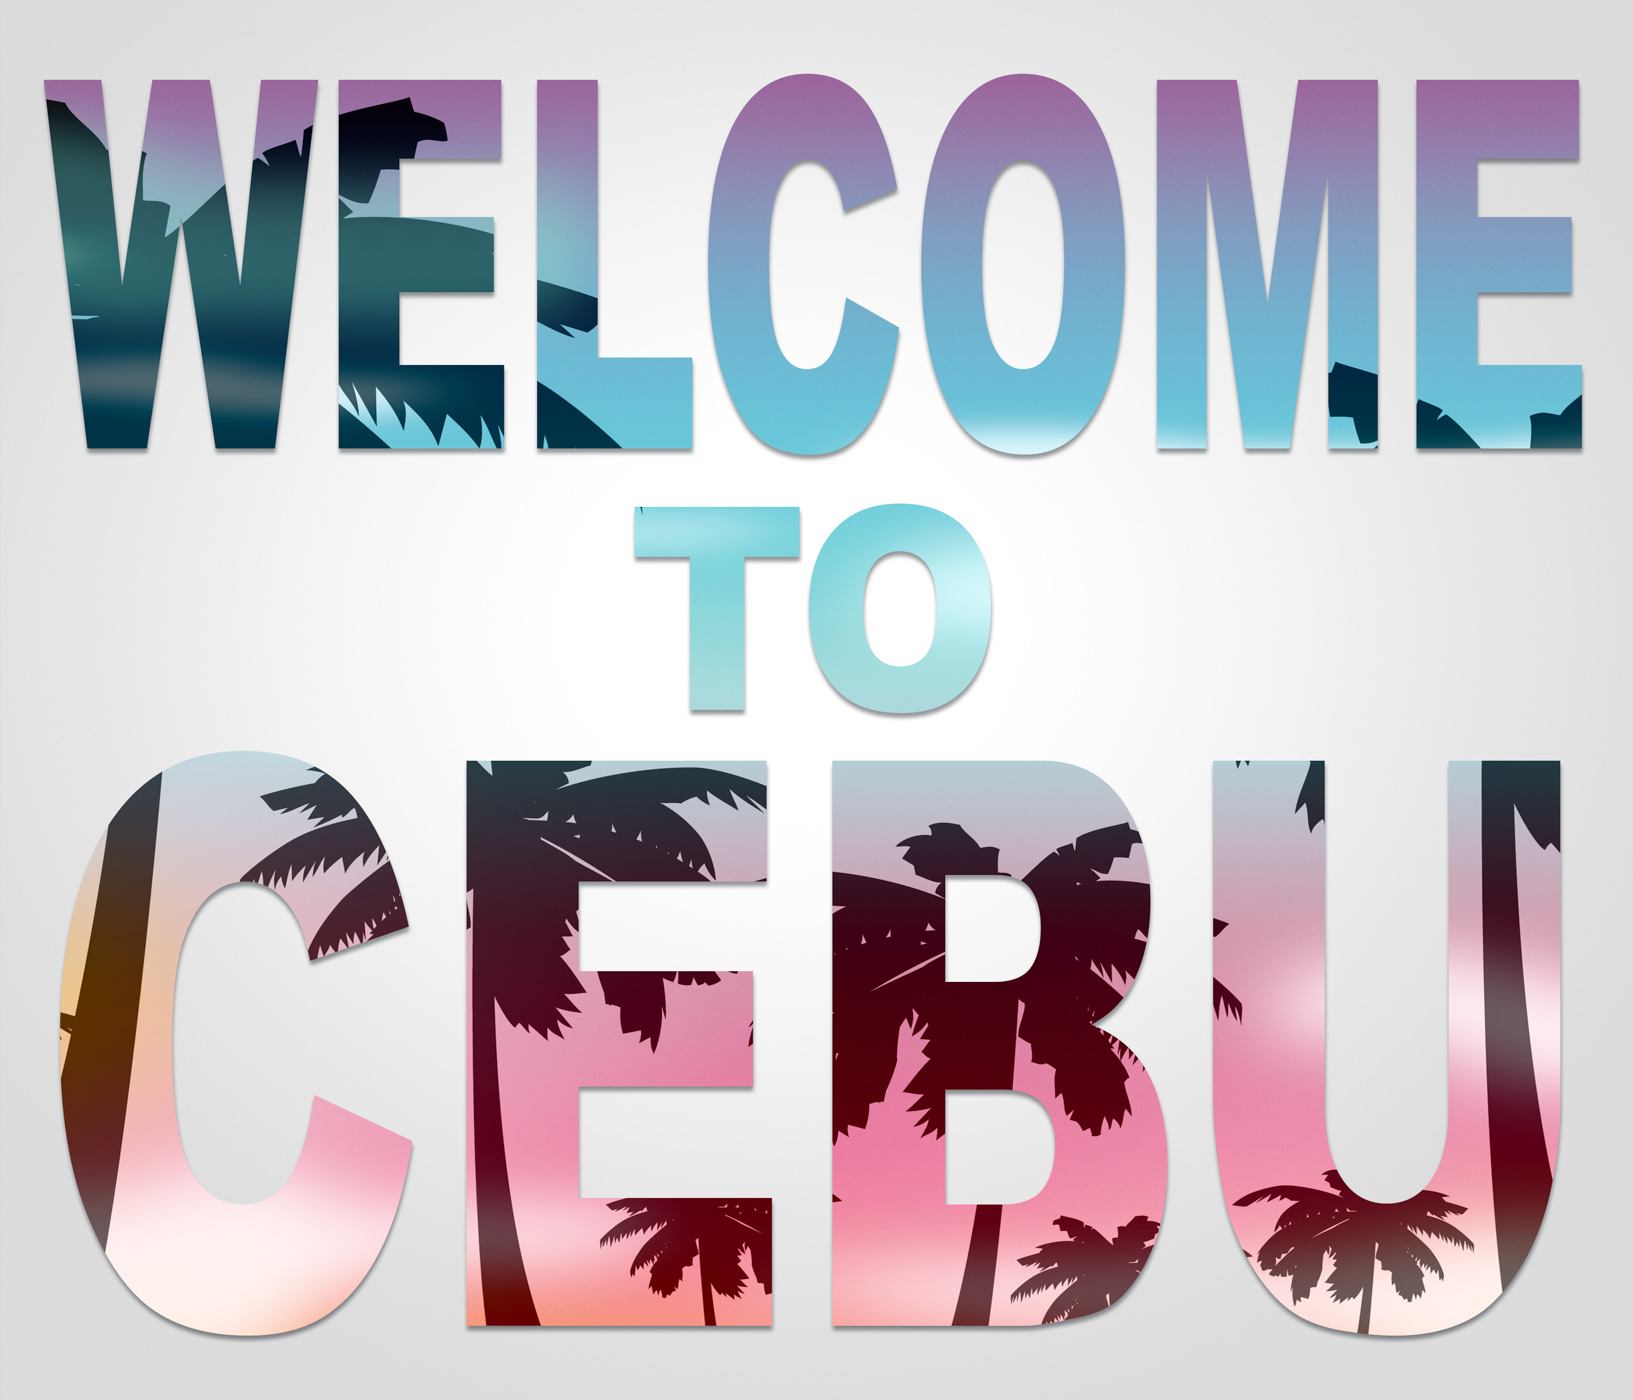 Welcome to cebu represents philippines vacations and holidays photo